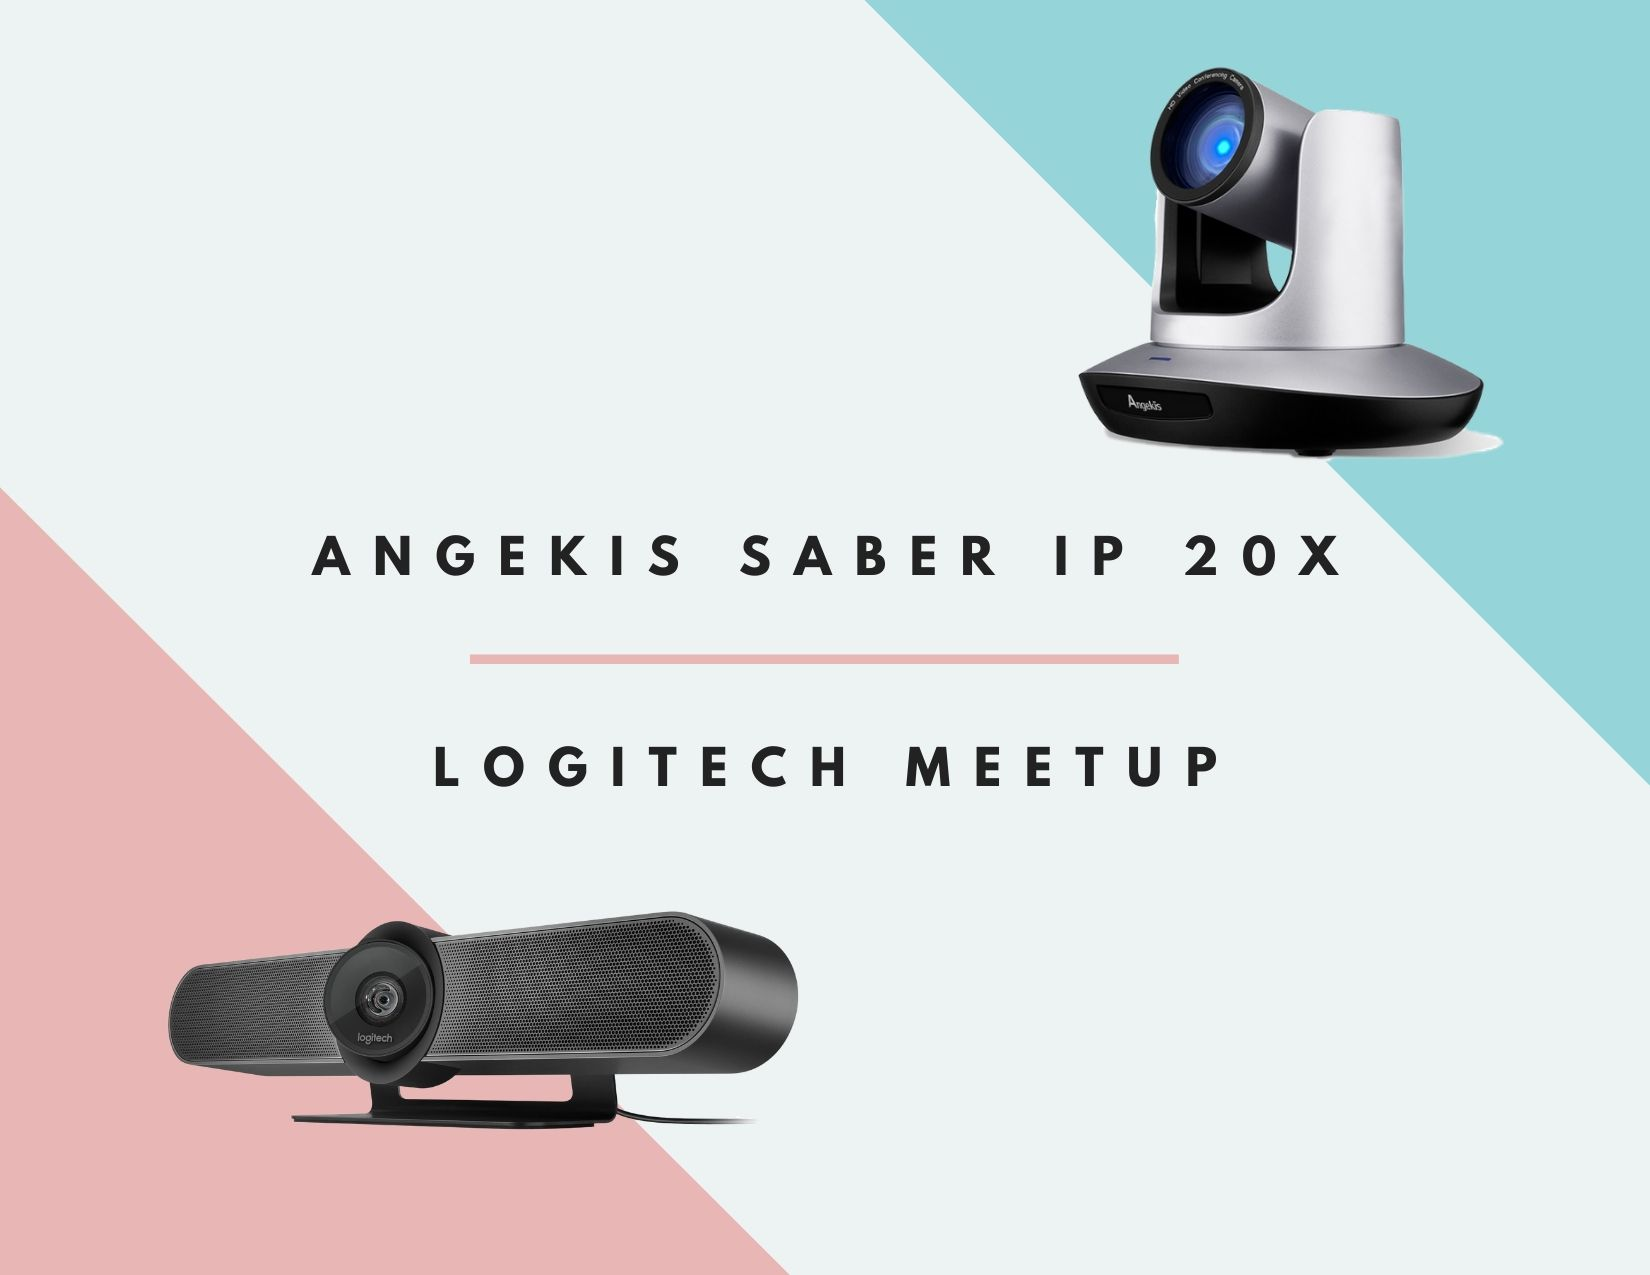 The Better Conference Camera: The Logitech Meetup vs the Angekis Saber